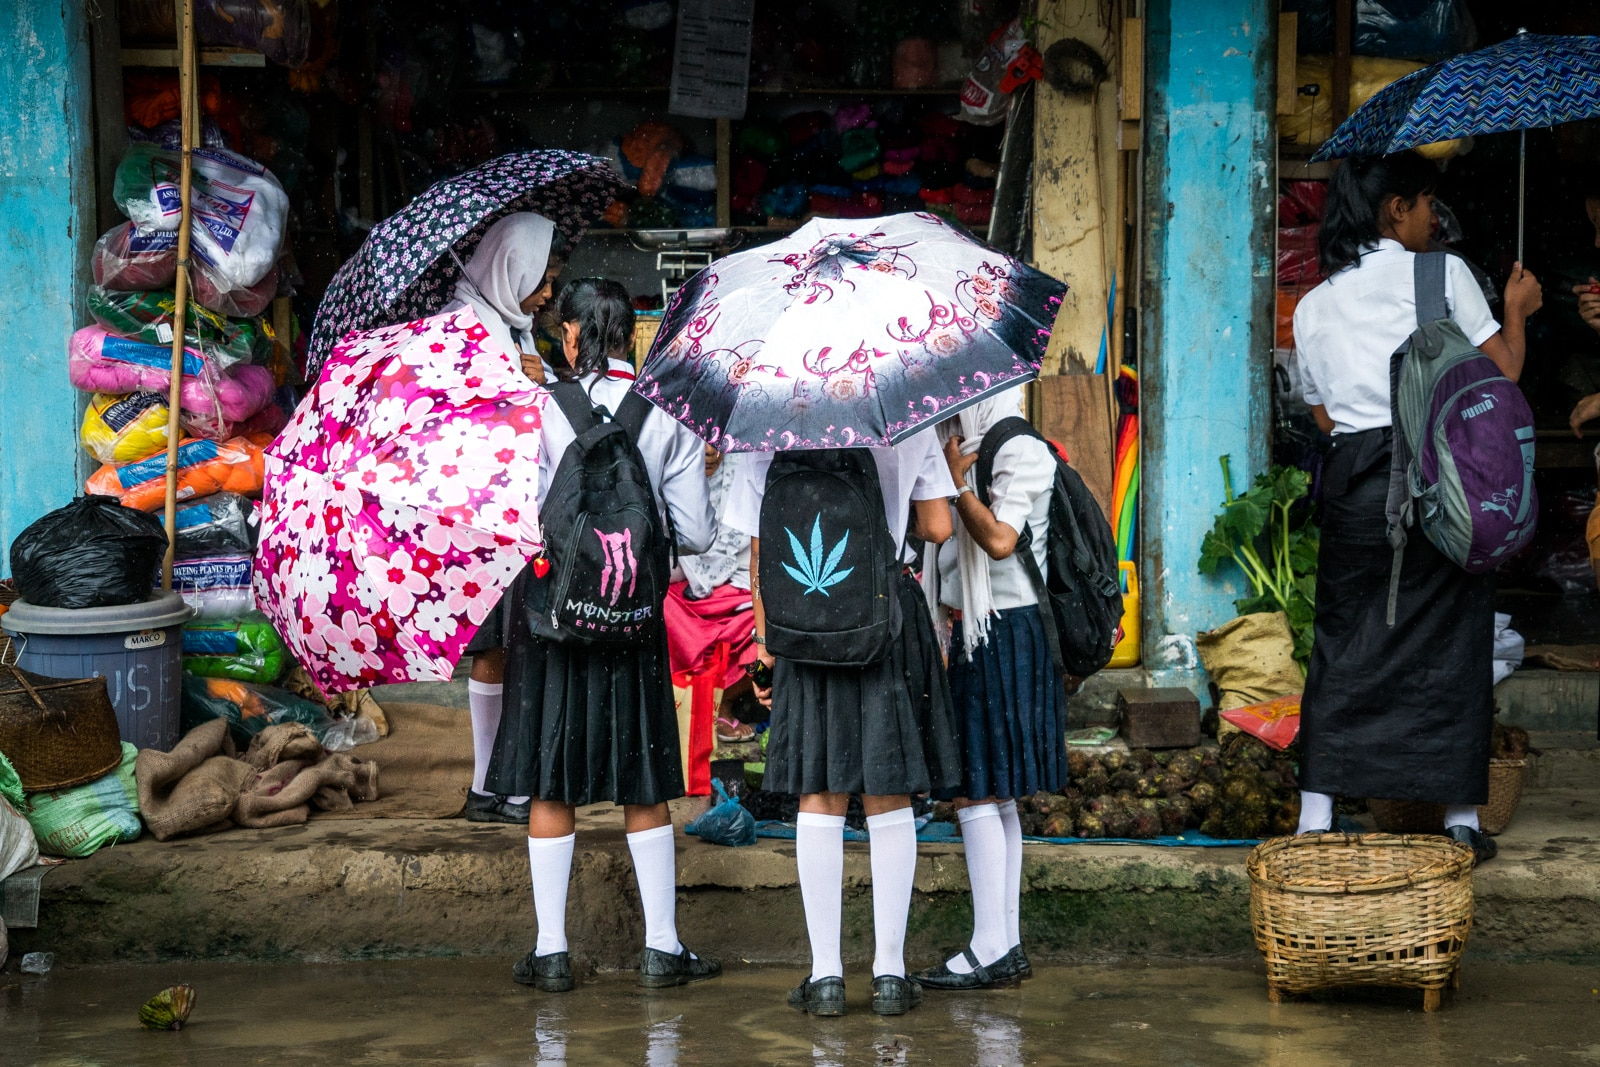 2a944aa8980f4 Monsoon travel packing list - Girls with umbrellas in Moirang, India - Lost  With Purpose